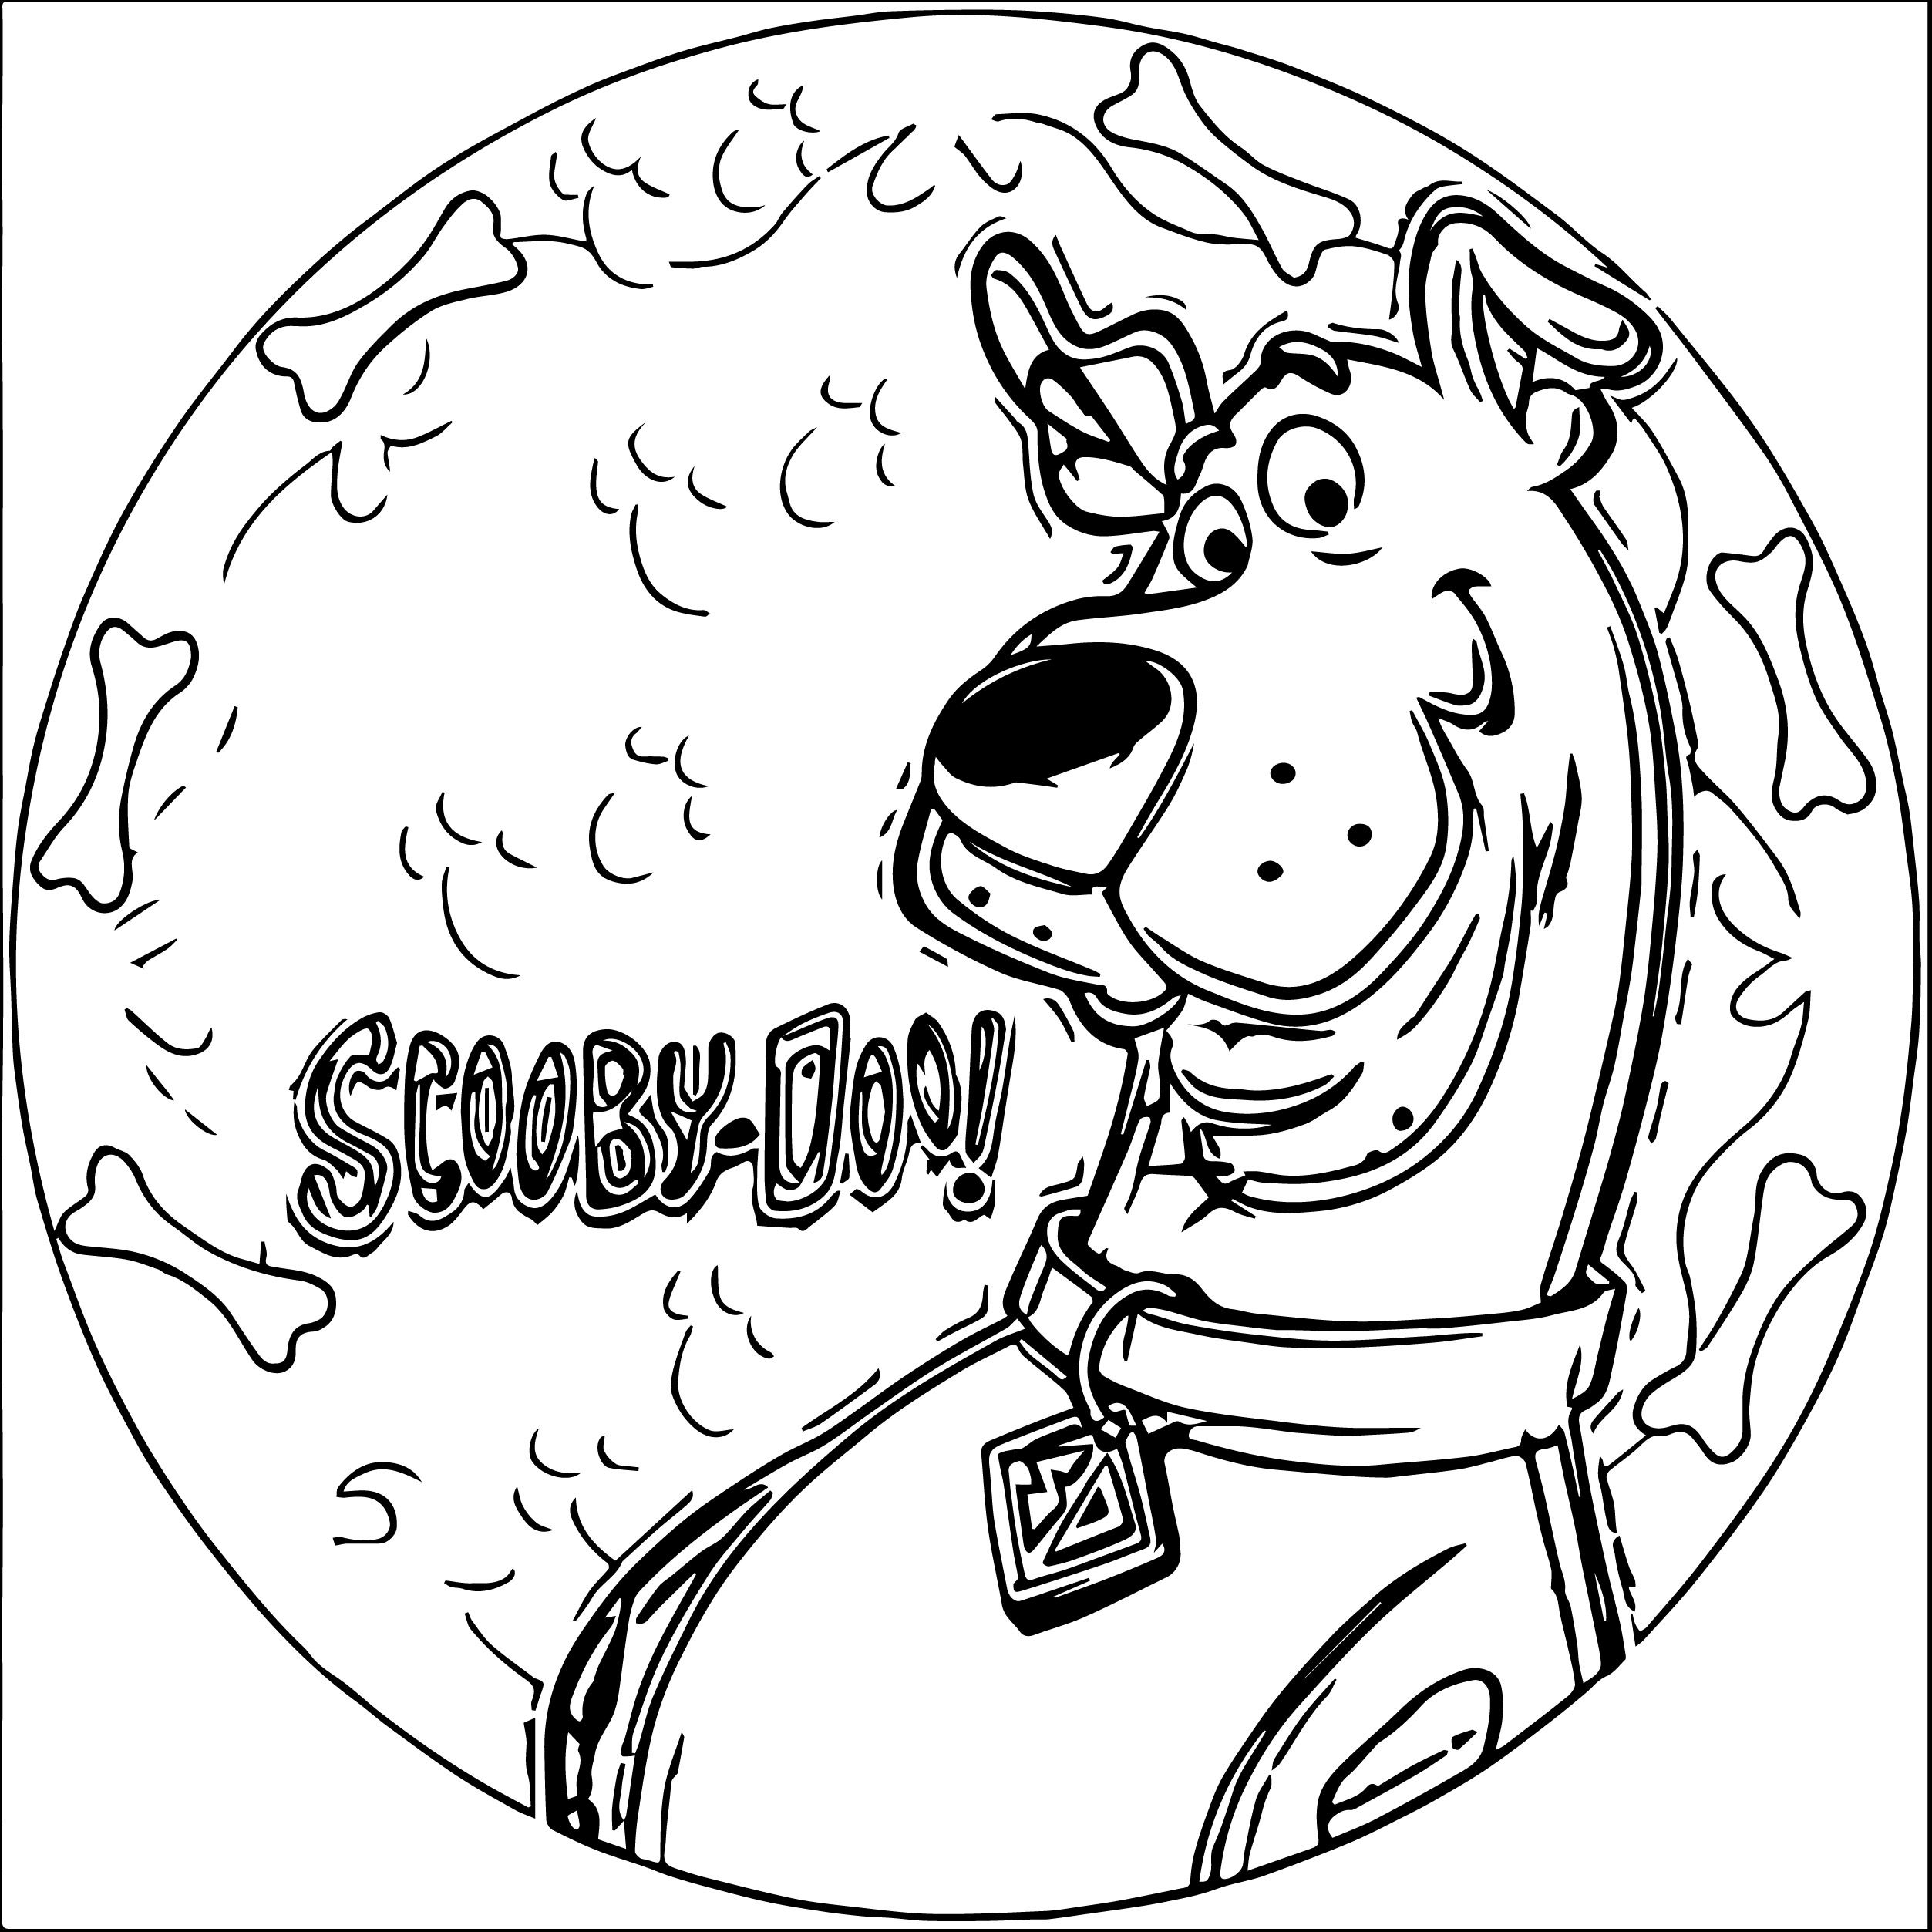 Daphne Scooby Doo Coloring Pages At Getcolorings